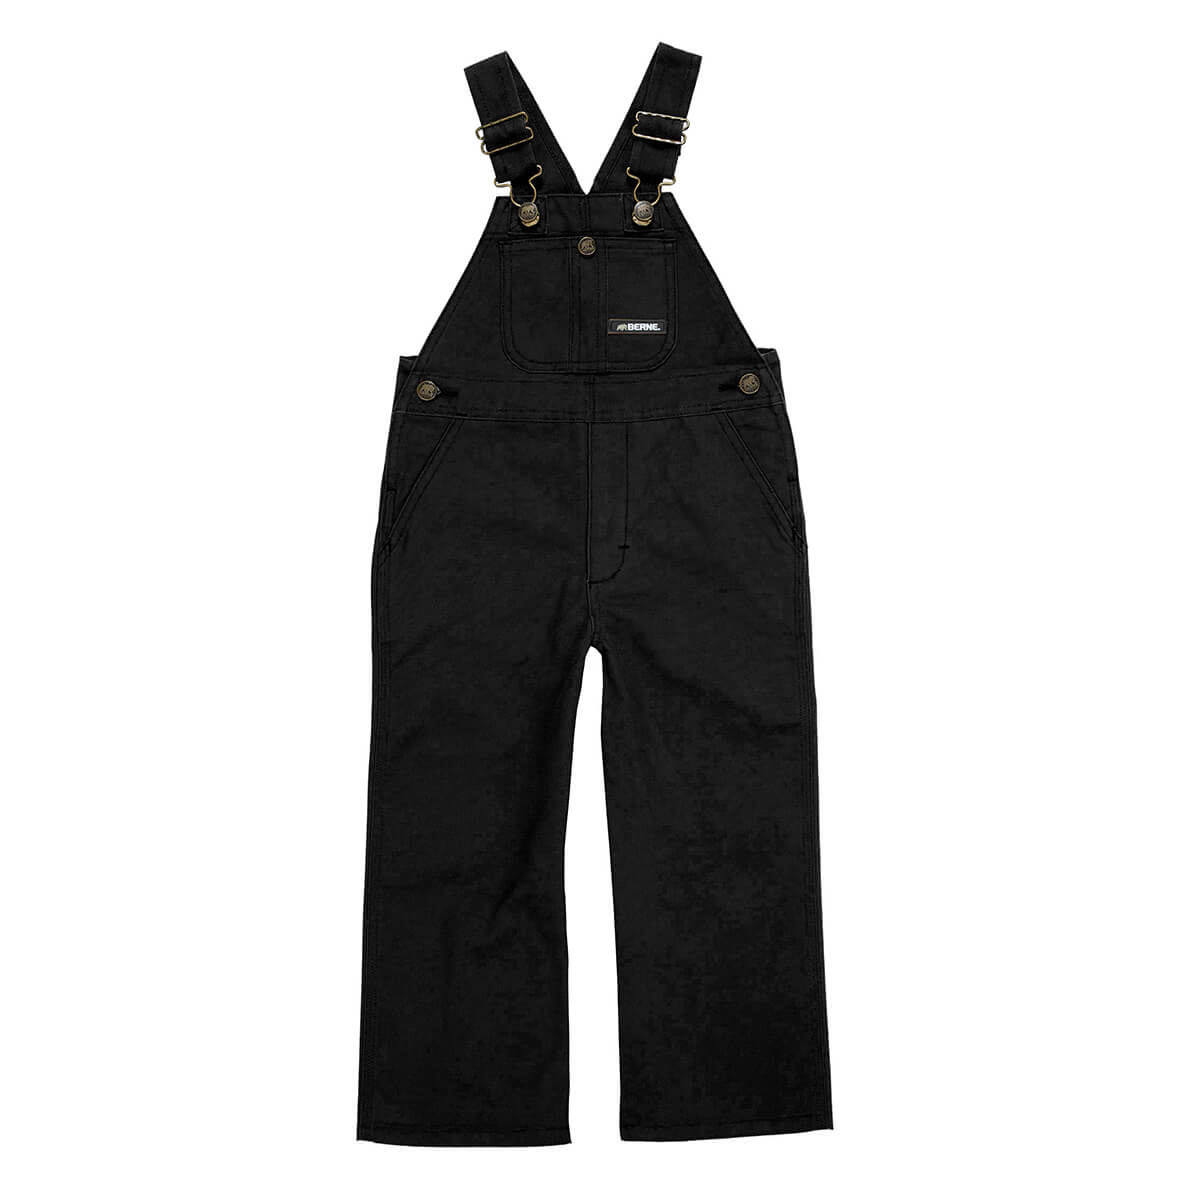 Youth Unlined Overall - Black